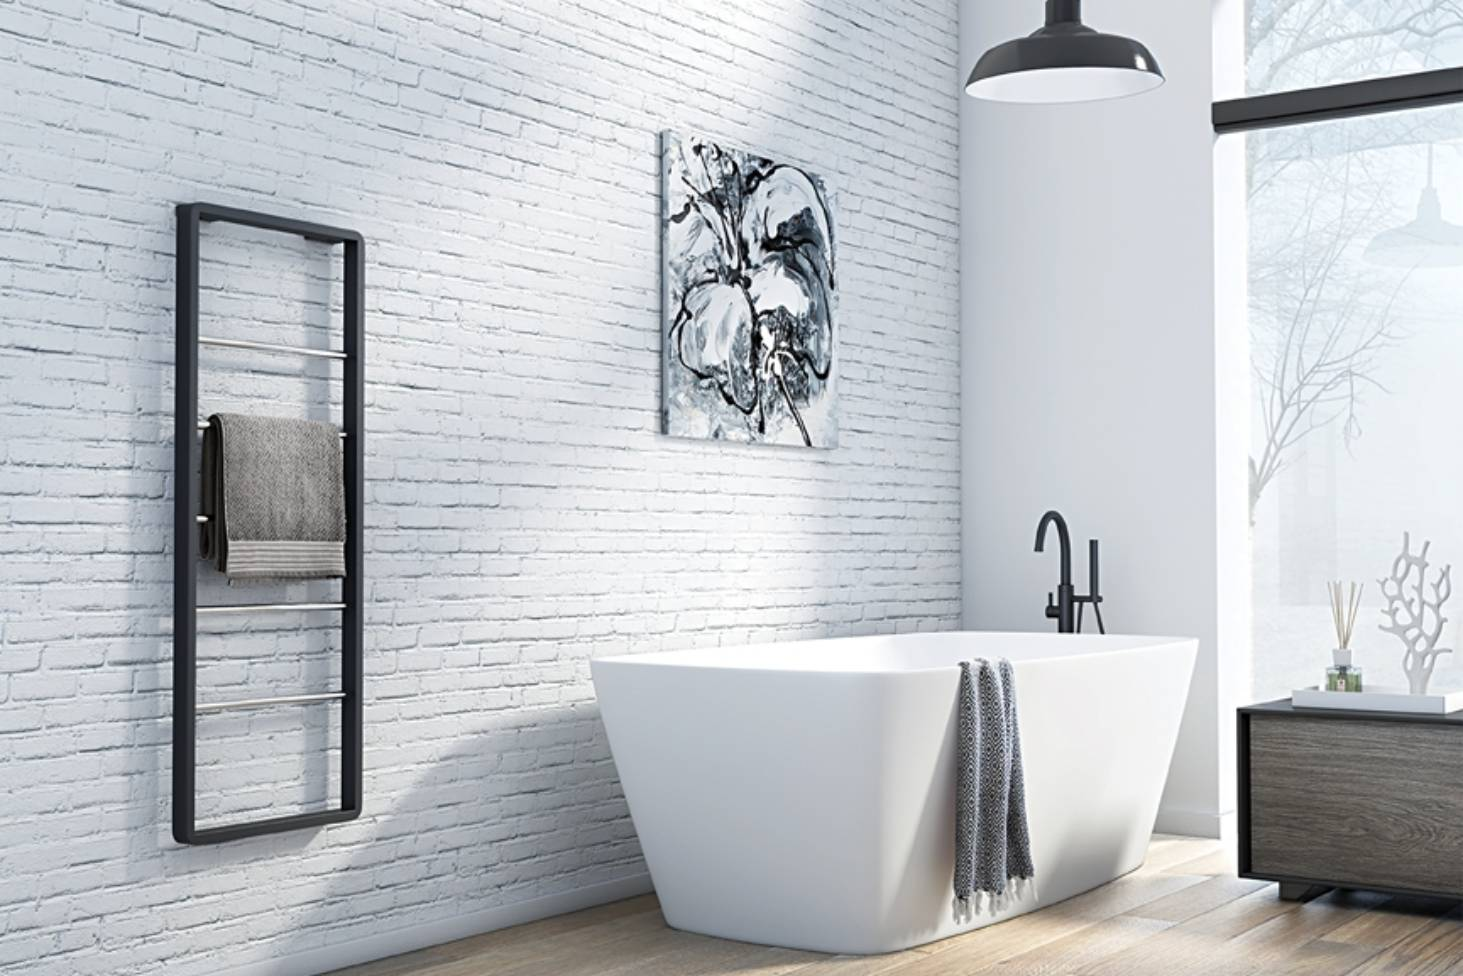 What To Consider When Designing Your Bathroom Bath Shower Or Both Stuff Co Nz